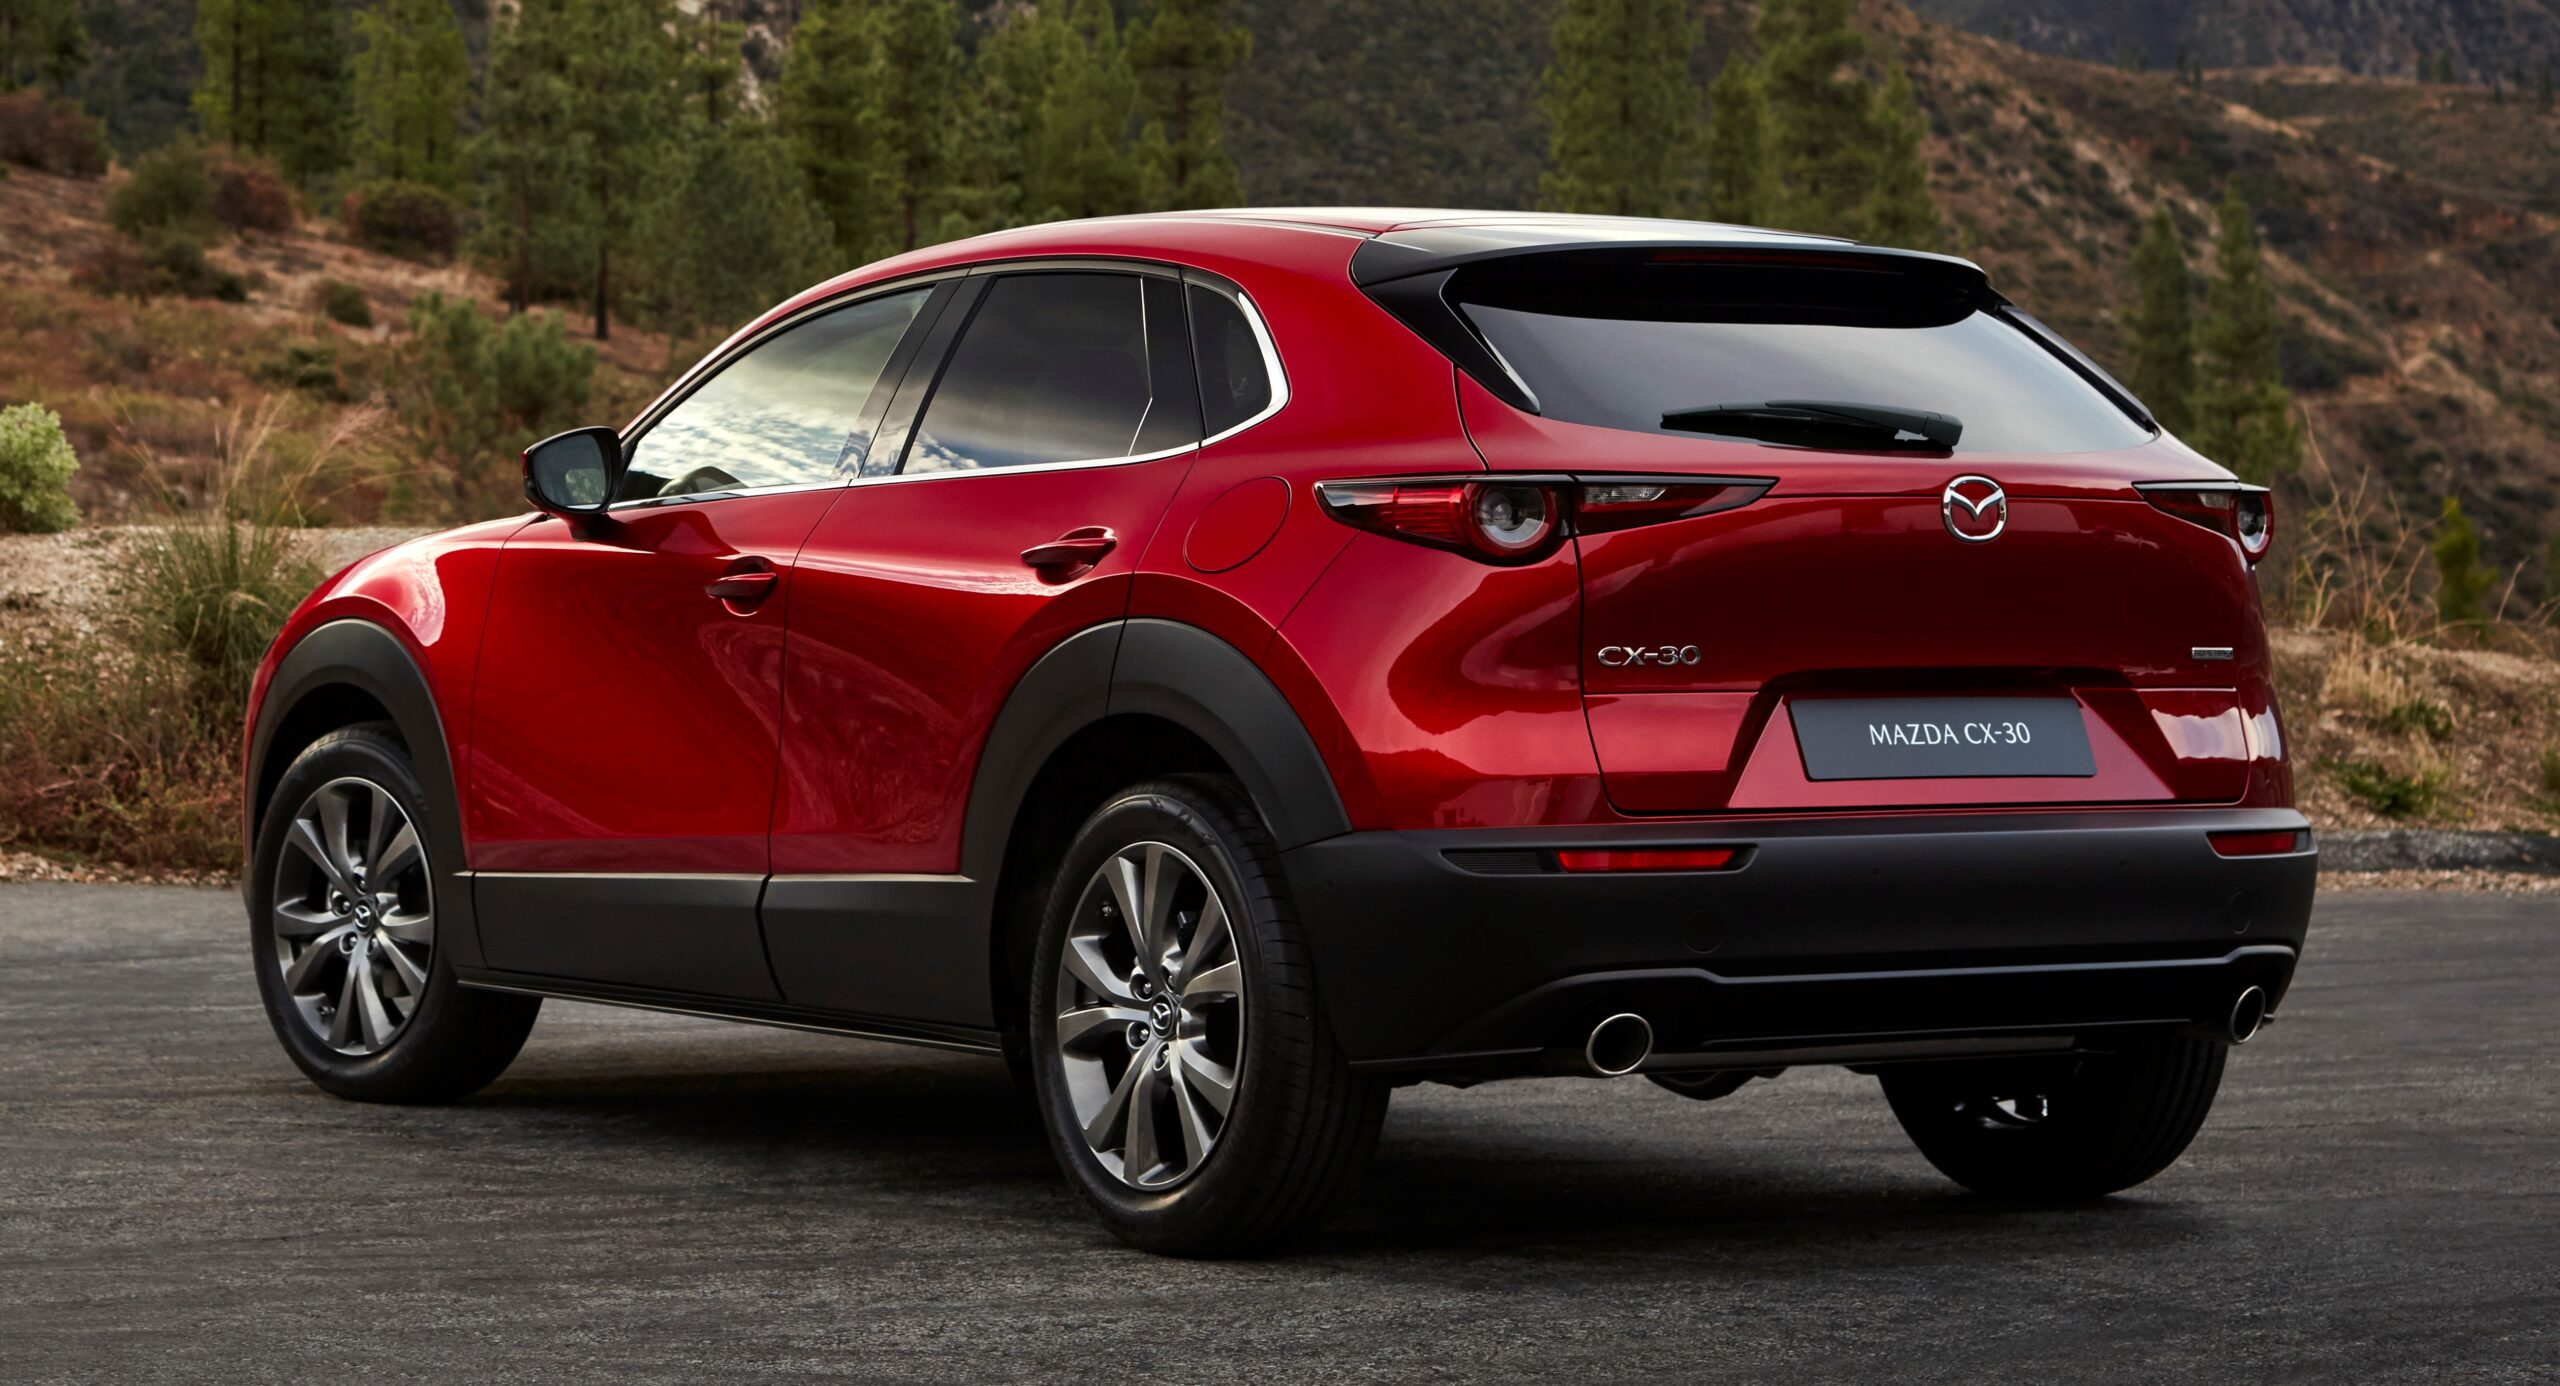 A rear view of the Mazda CX-30